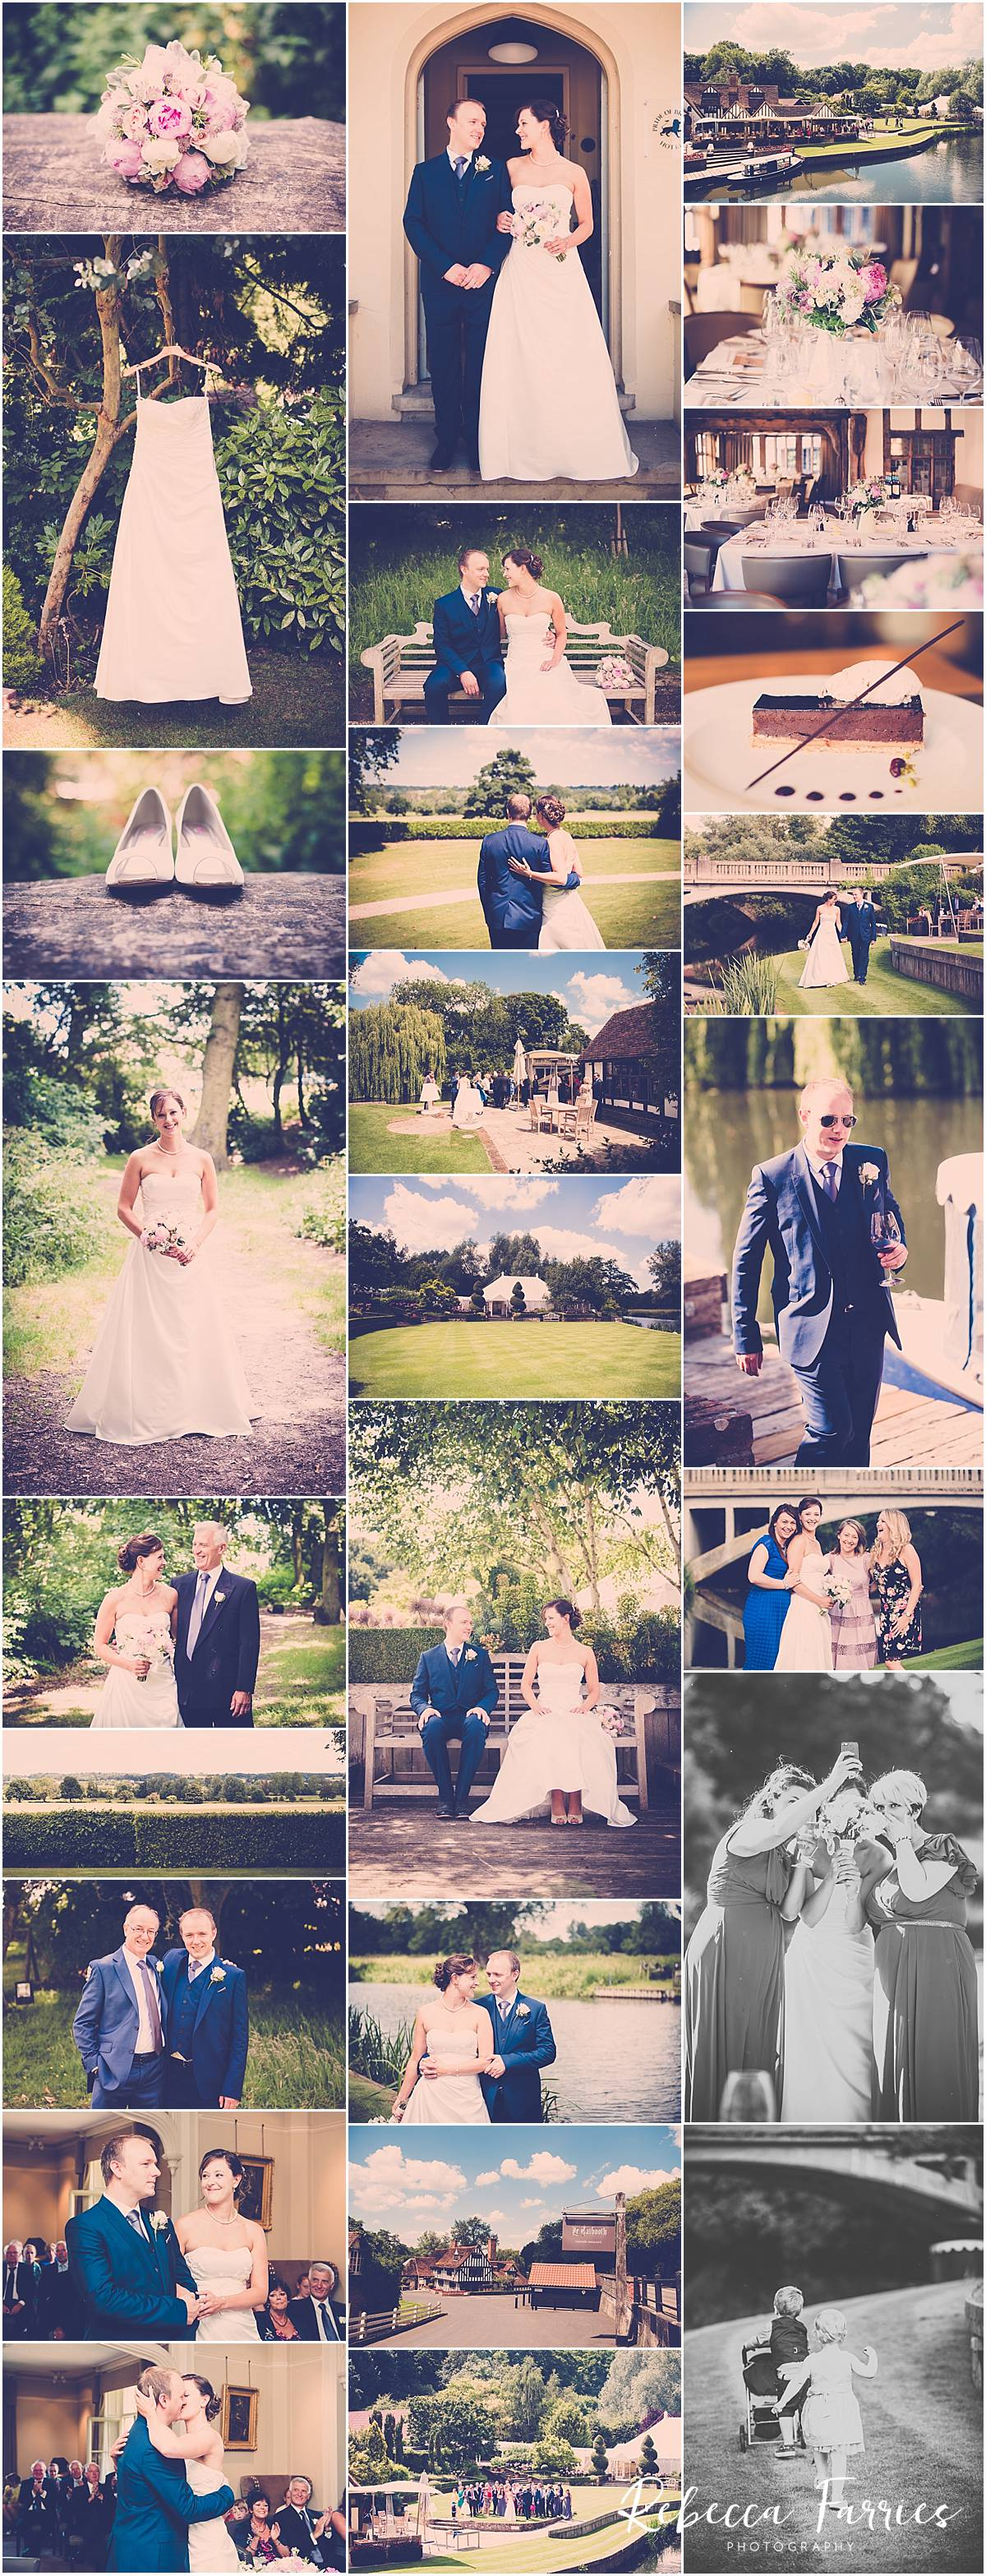 collage of wedding photos taken at Le Talbooth in Essex